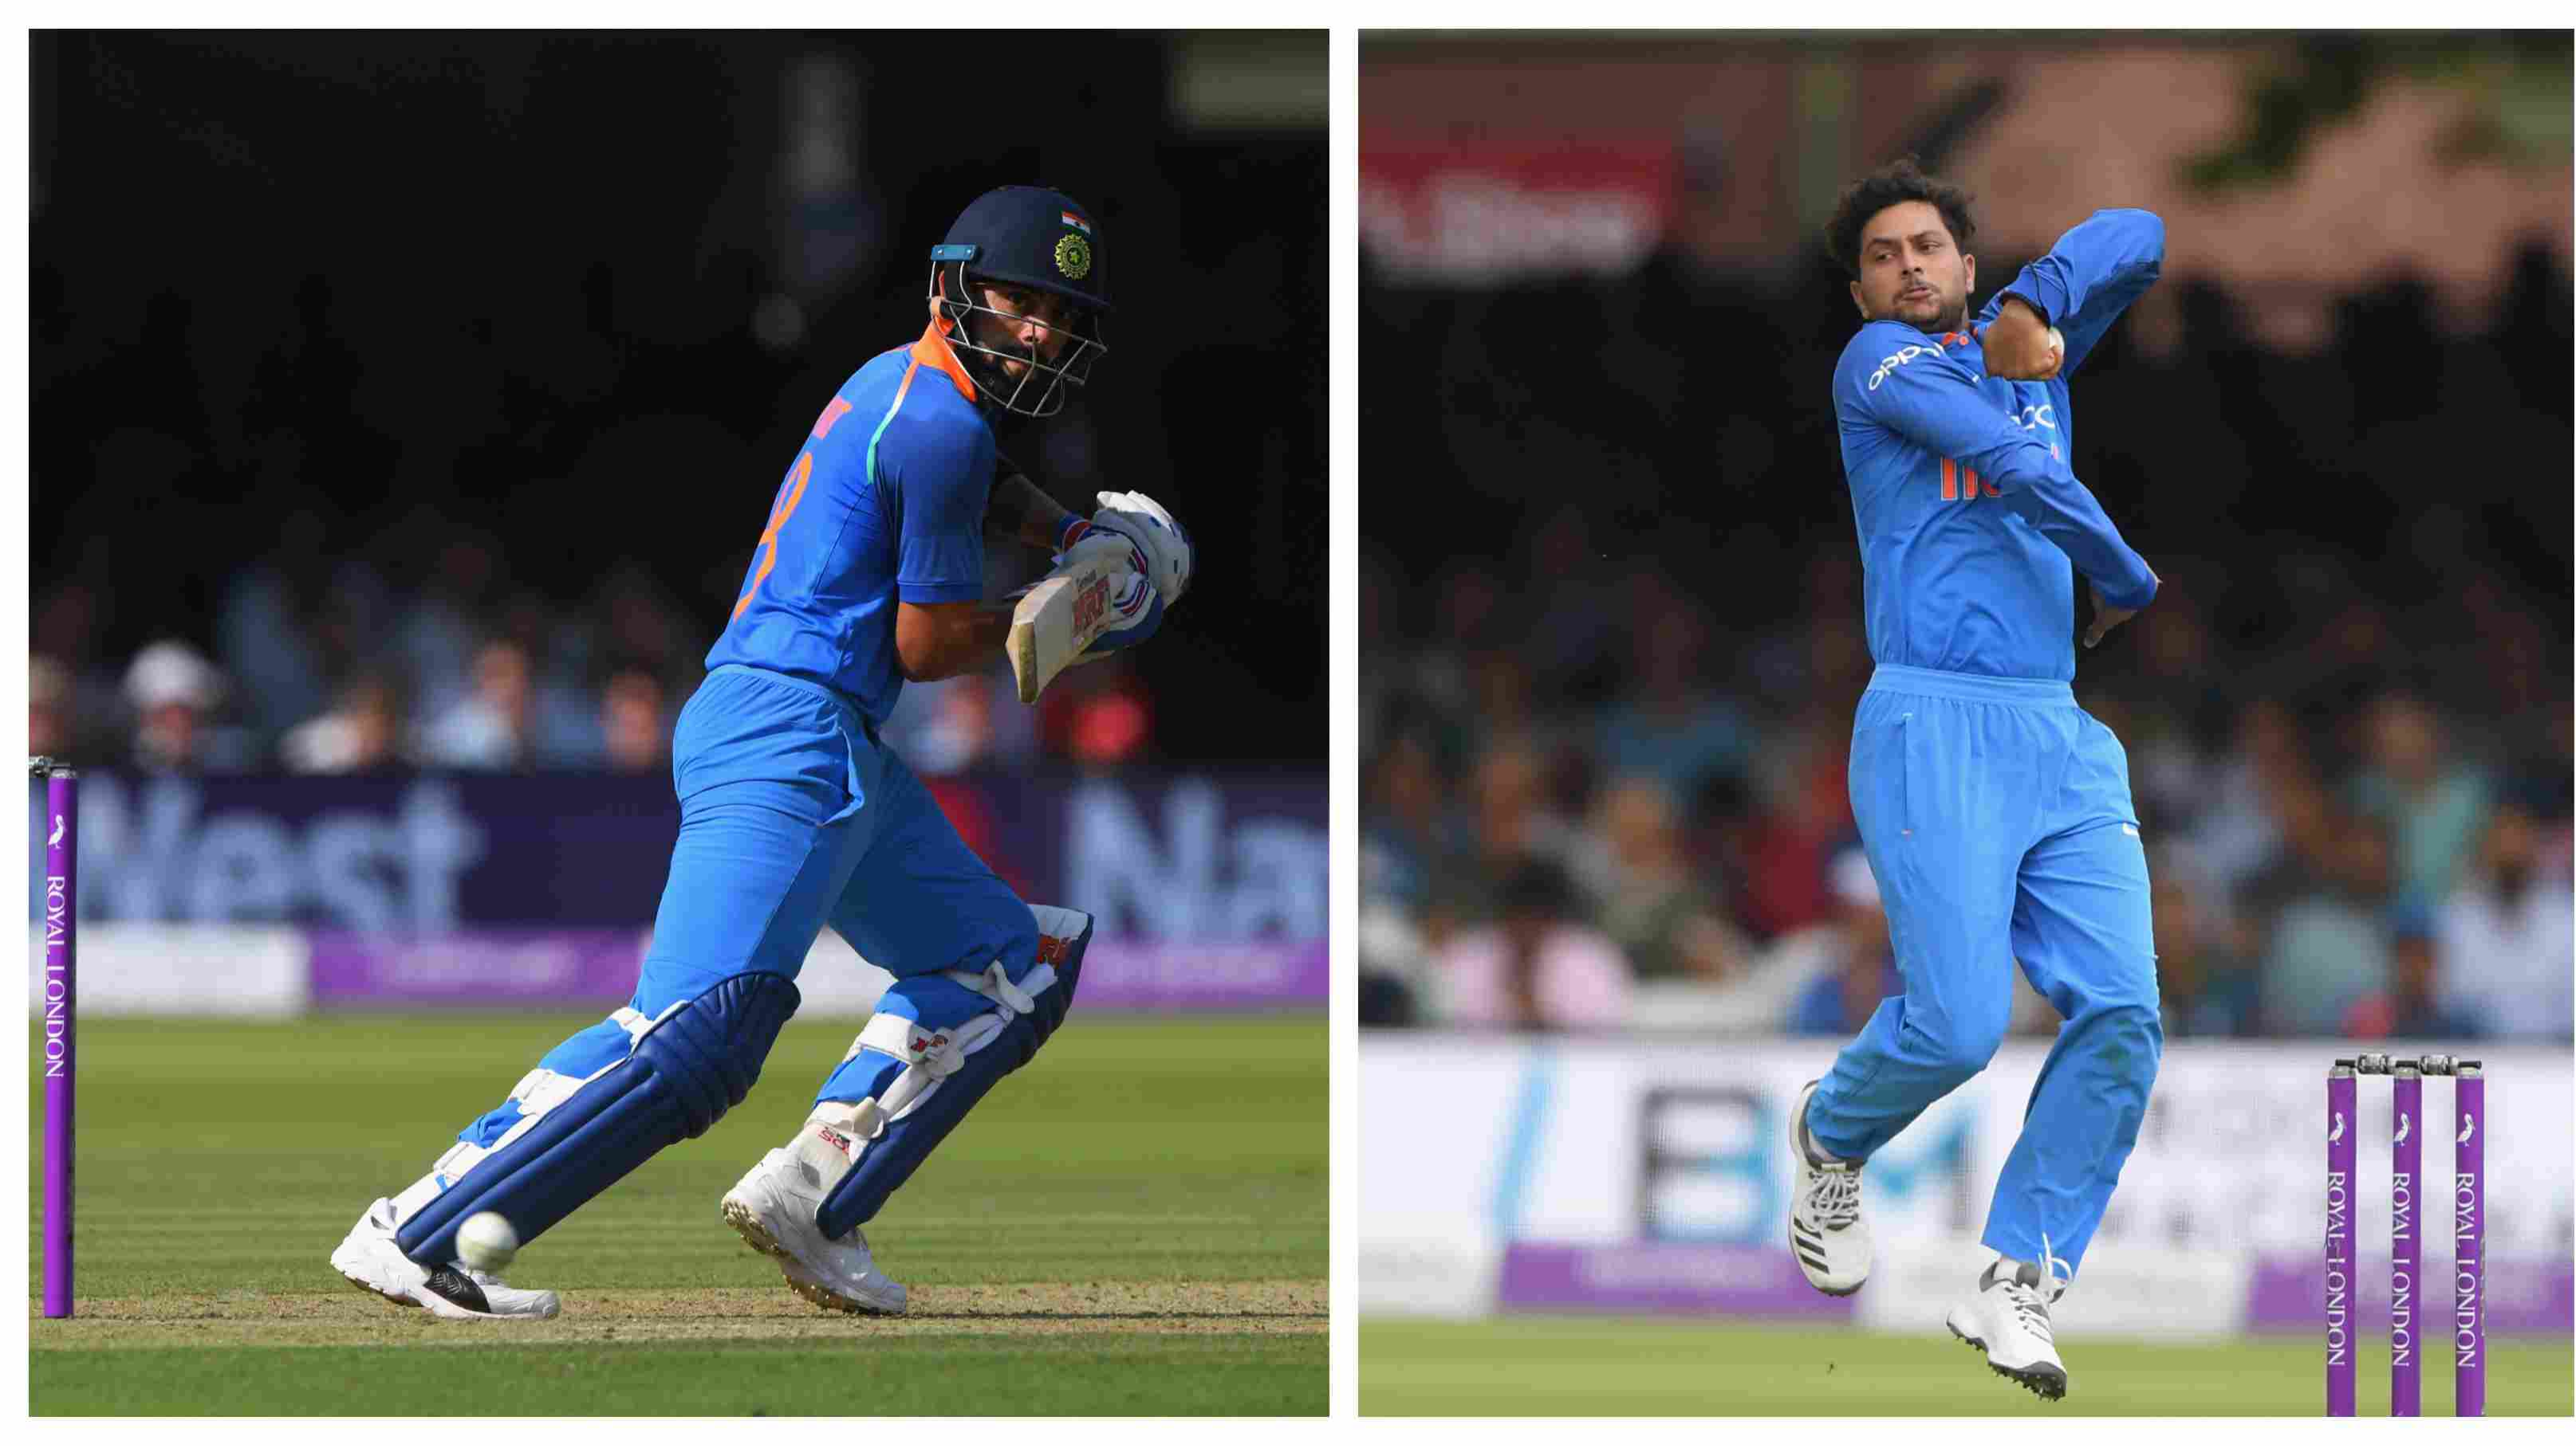 ENG v IND 2018: Virat Kohli strengthens his position as No.1 ODI batsman, Kuldeep Yadav also reaches career high